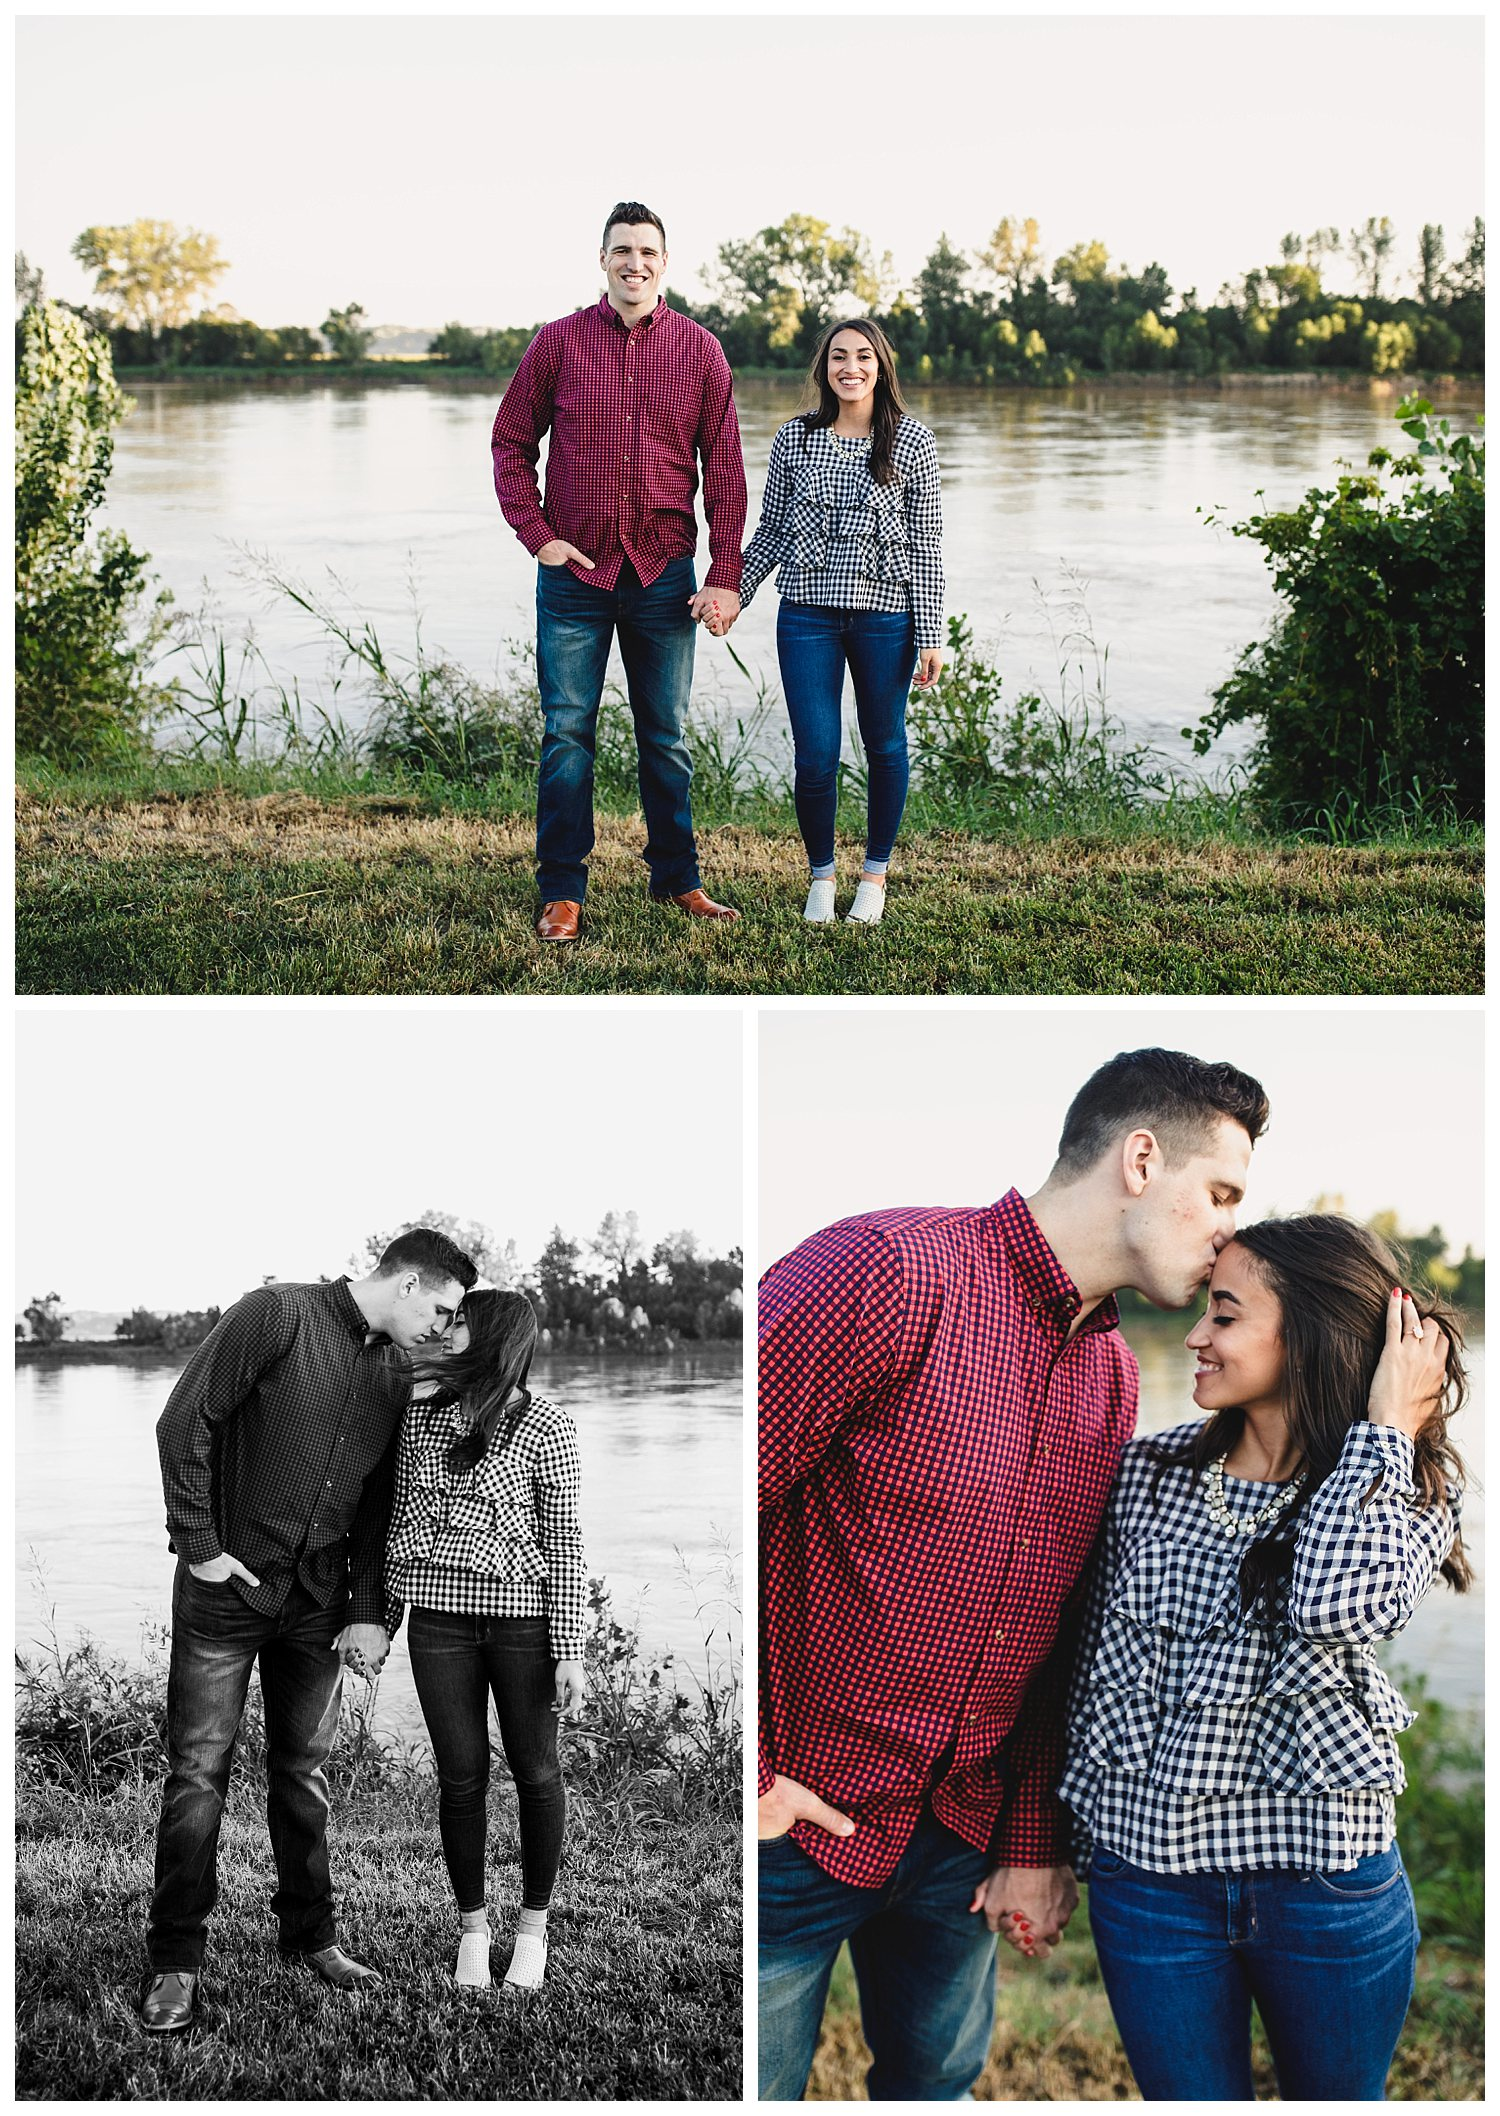 Kansas_City_Wedding_Photographer_Engagement_Kelsey_Diane_Photography_Midwest_Traveling_In_home_engagement_Session_Cassie_Austin_Parkville_Missouri_0890.jpg